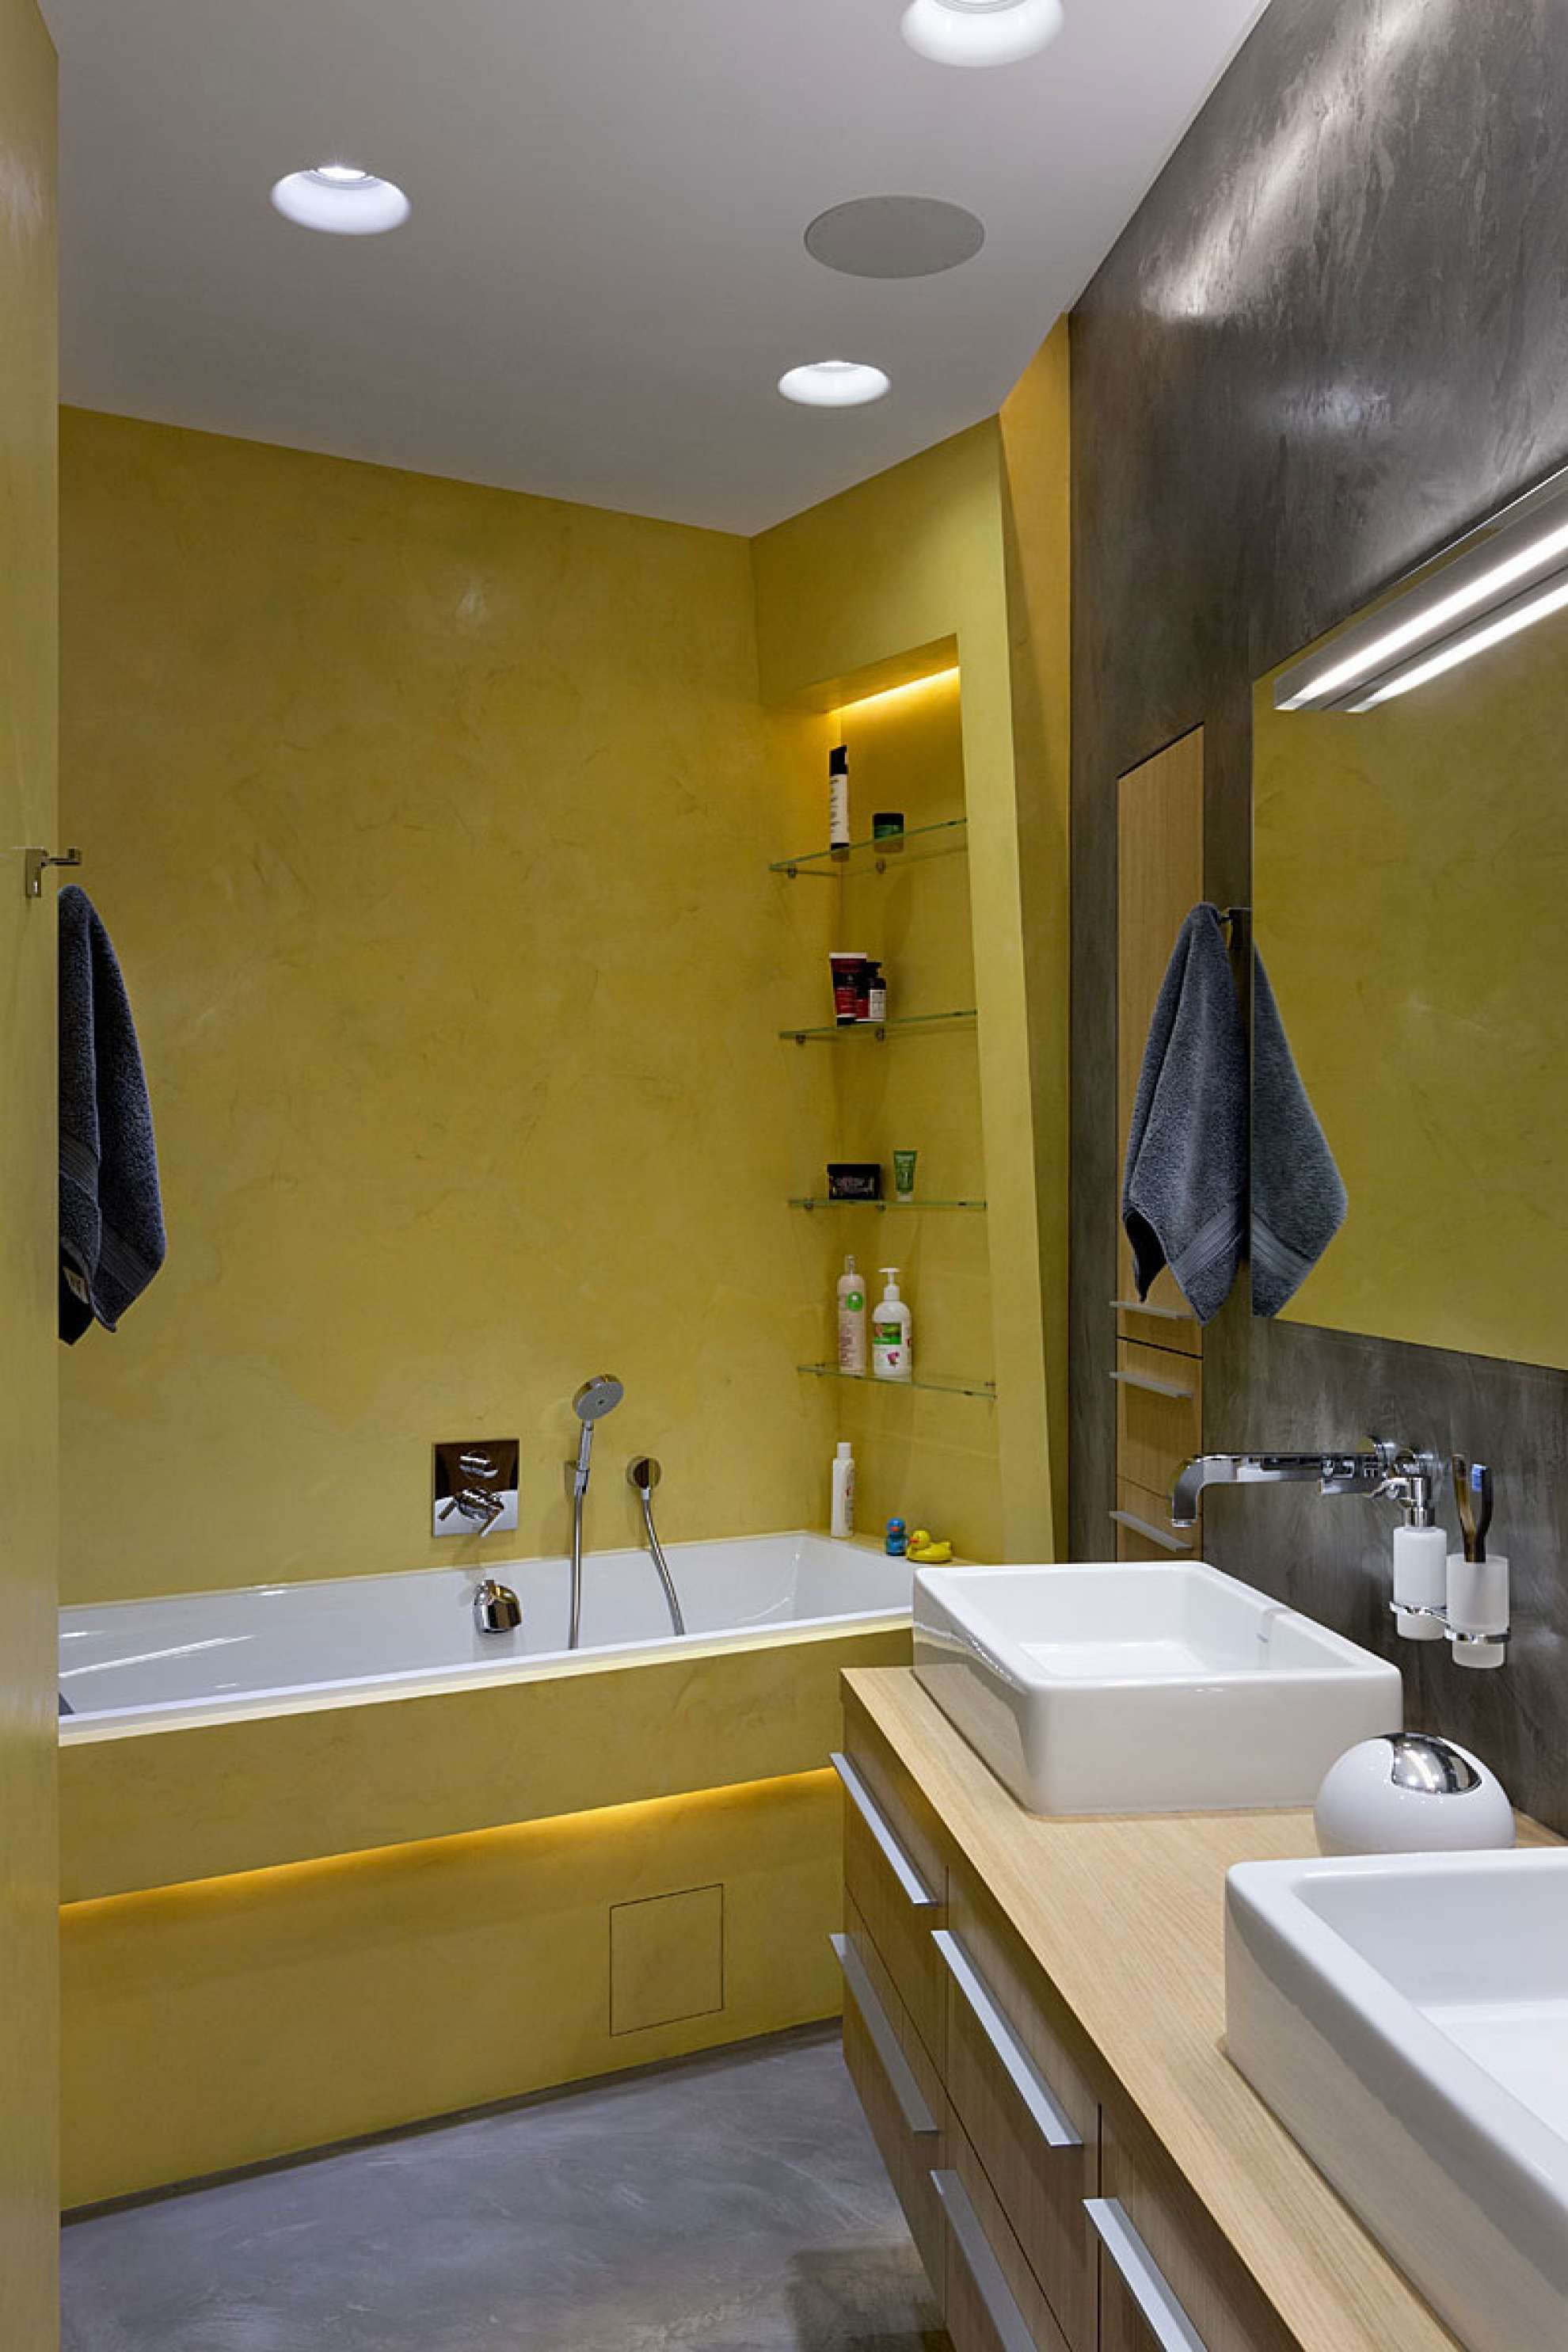 bathroom-interior-yellow-loft.jpg